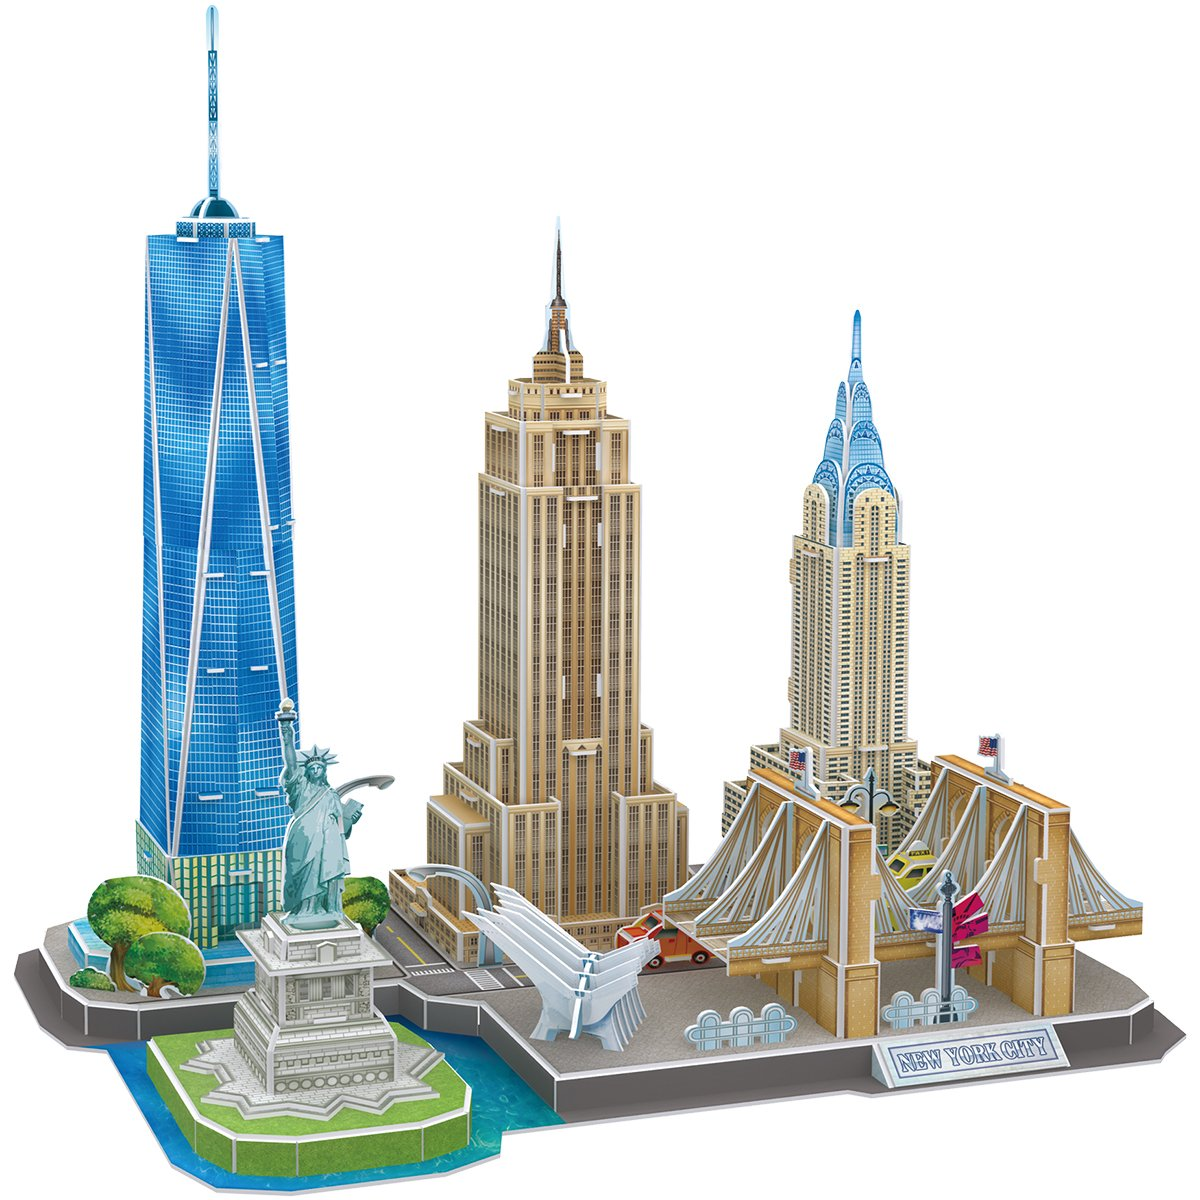 CubicFun 3D Puzzle Barcelona CityLine Building Set Display Architecture Model Kit to Build for Fun, 186 Pieces CubicFun Toys Industrial Co. Ltd.